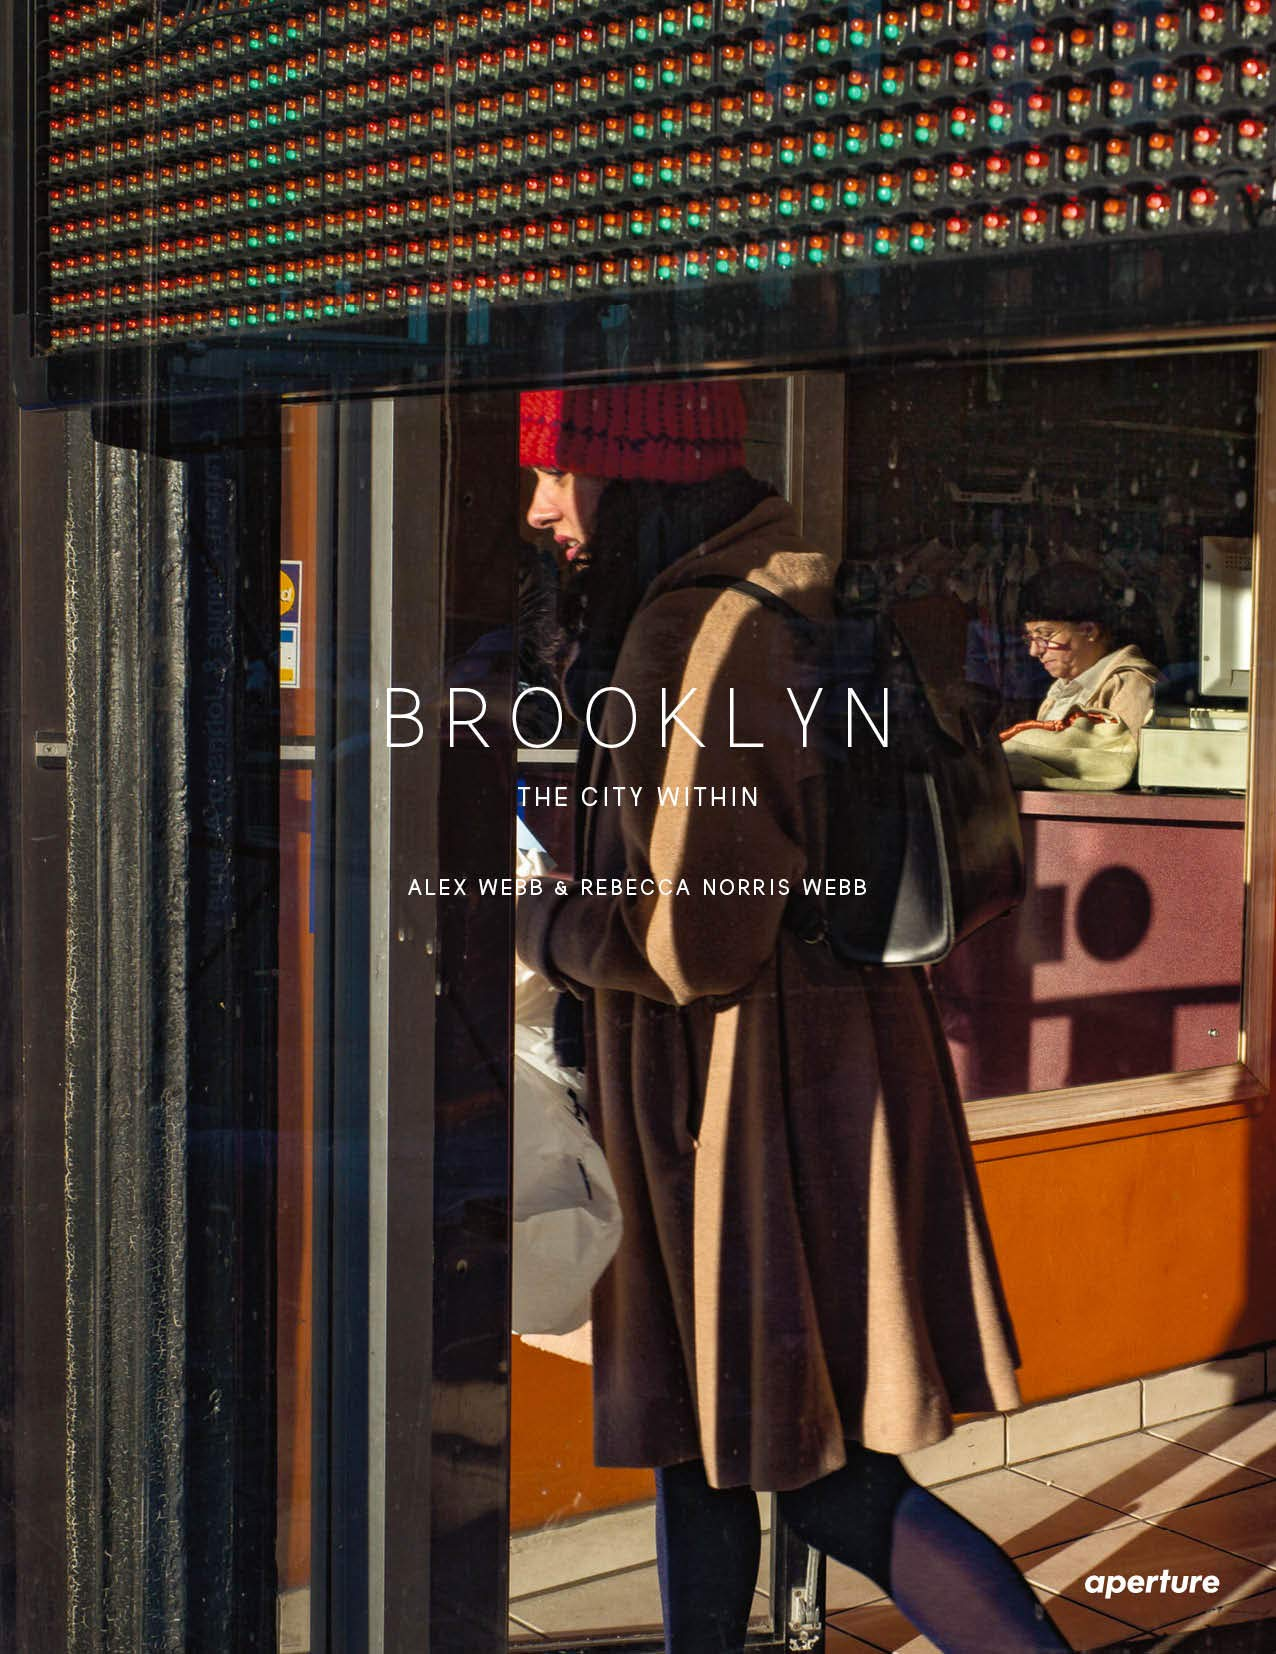 Alex Webb and Rebecca Norris Webb: Brooklyn, The City Within by Aperture